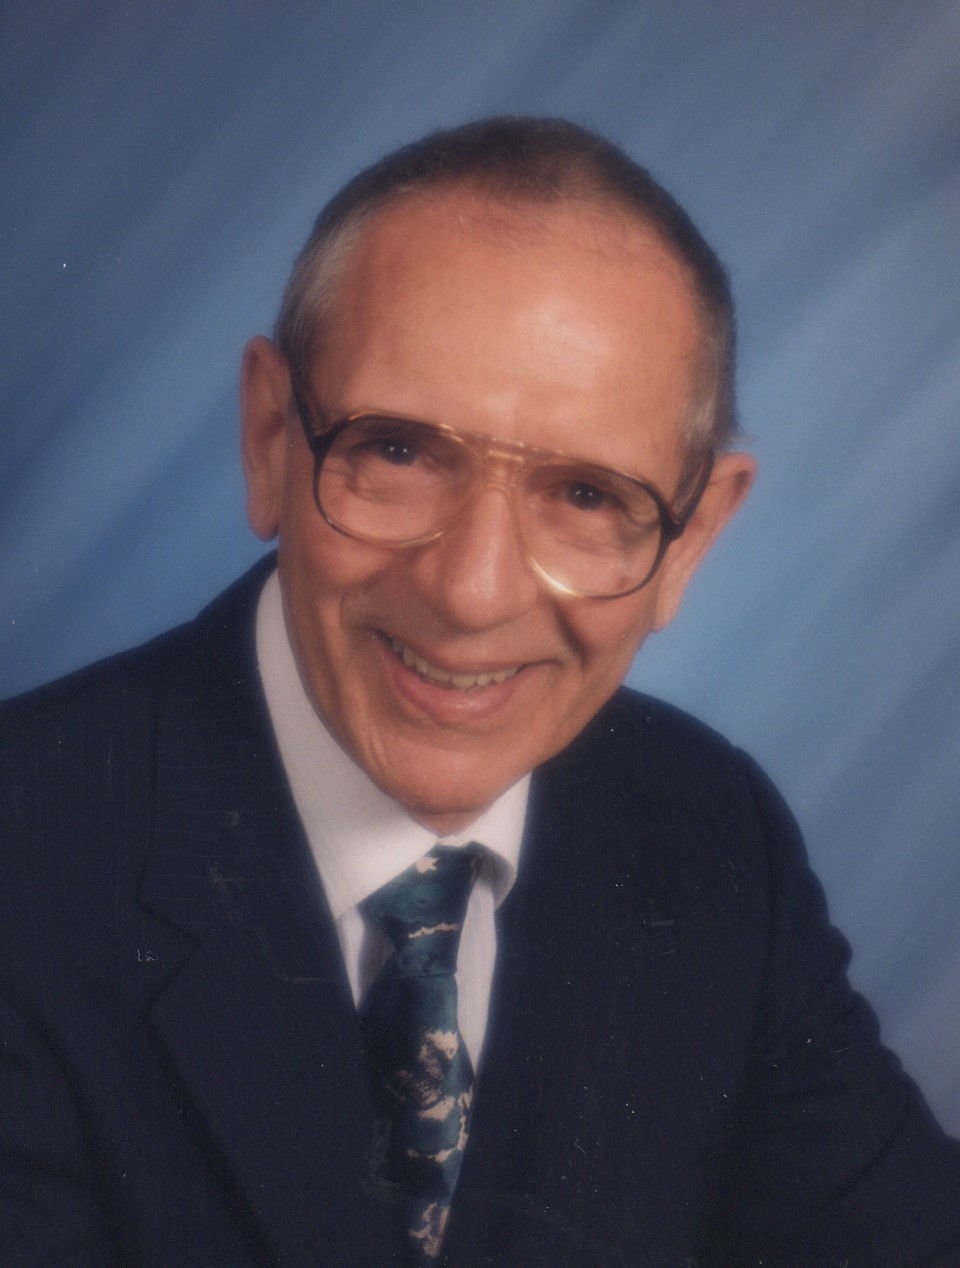 Keith G. Chase